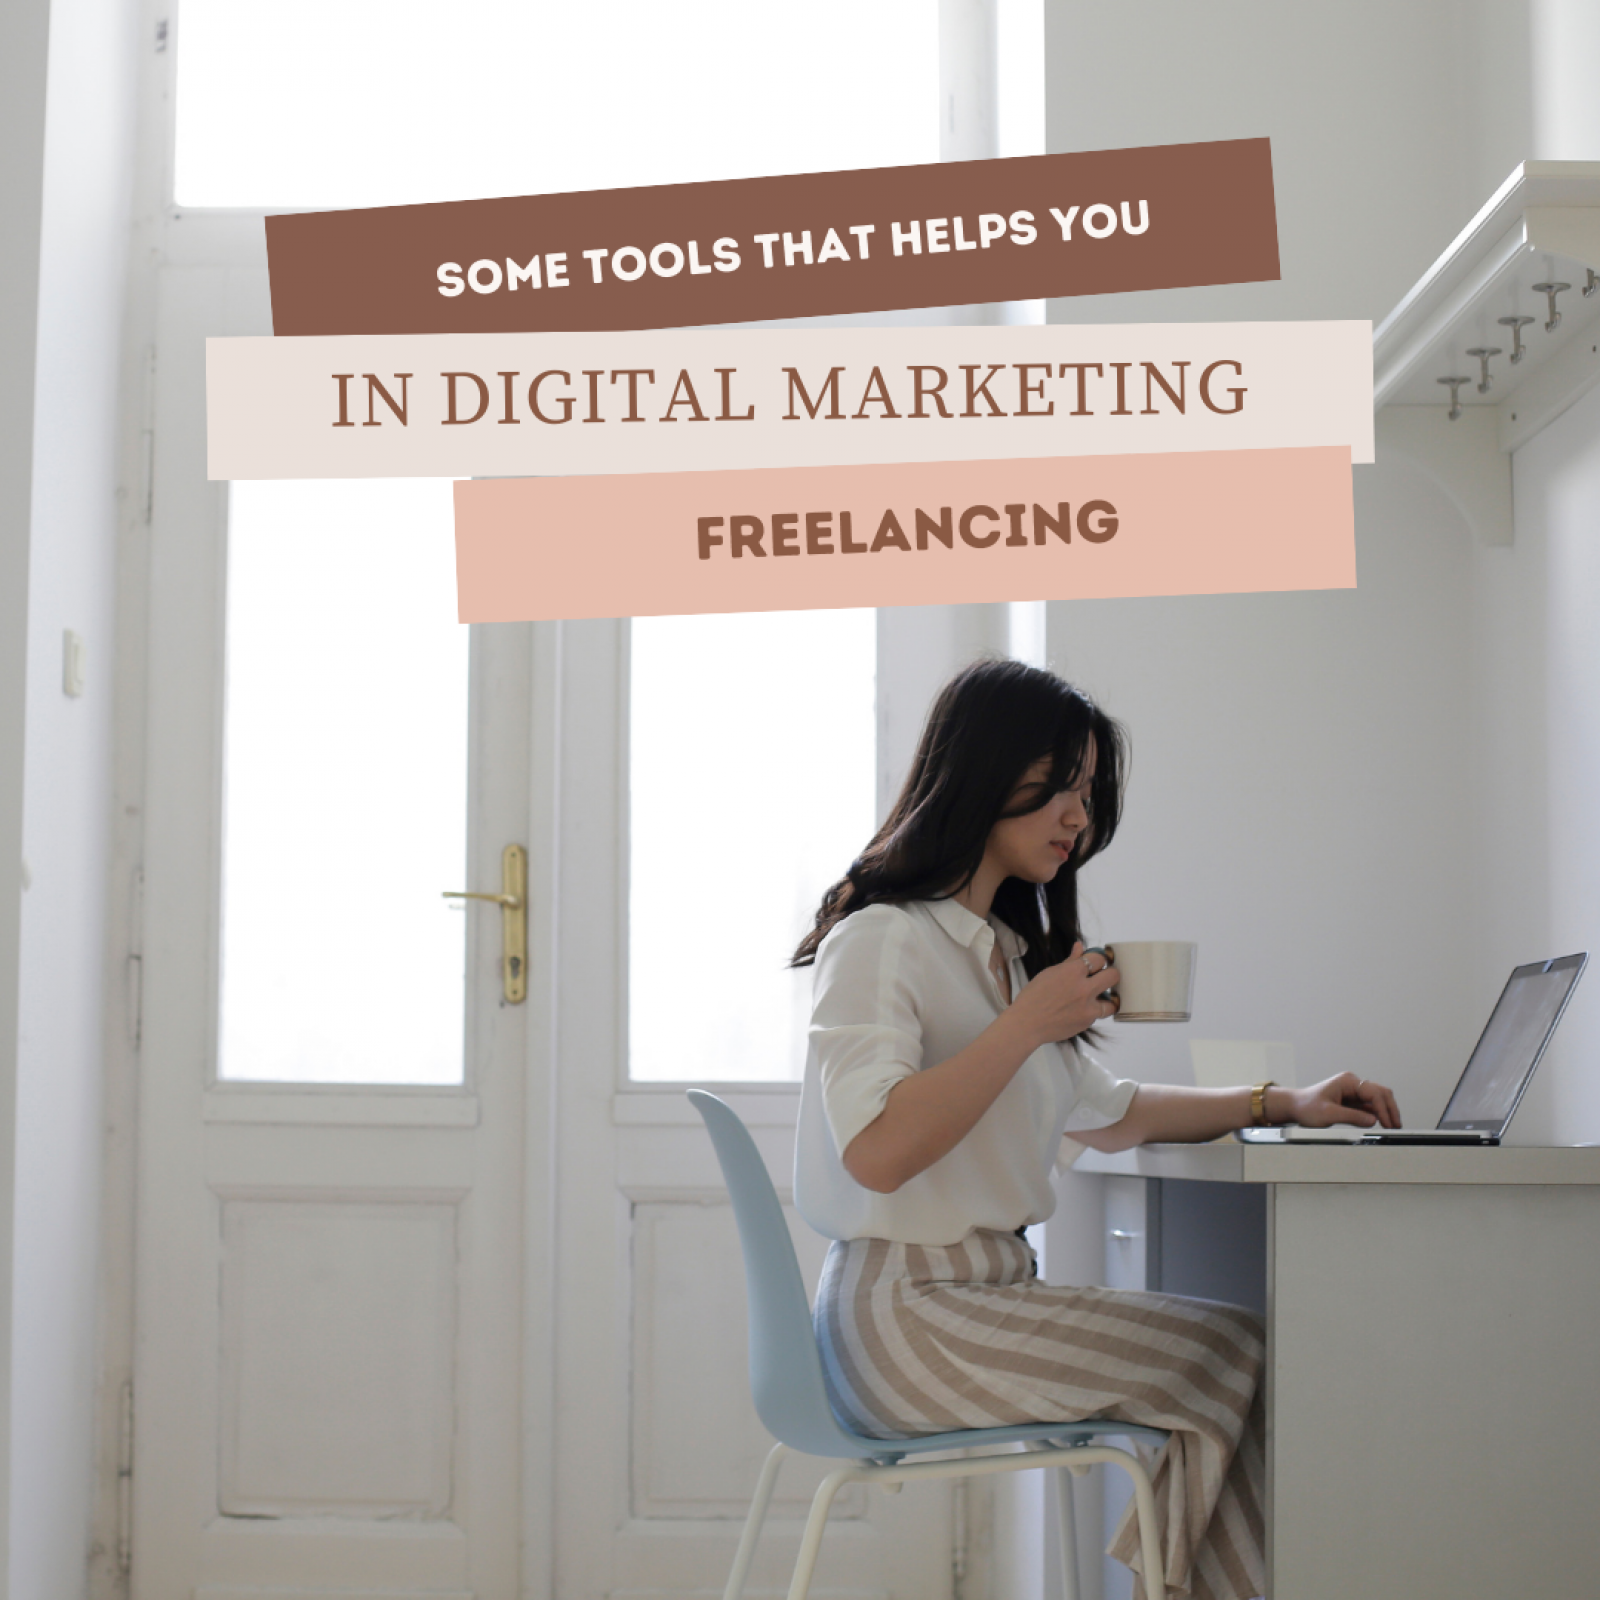 Some Tools That Helps You In Digital Marketing Freelancing